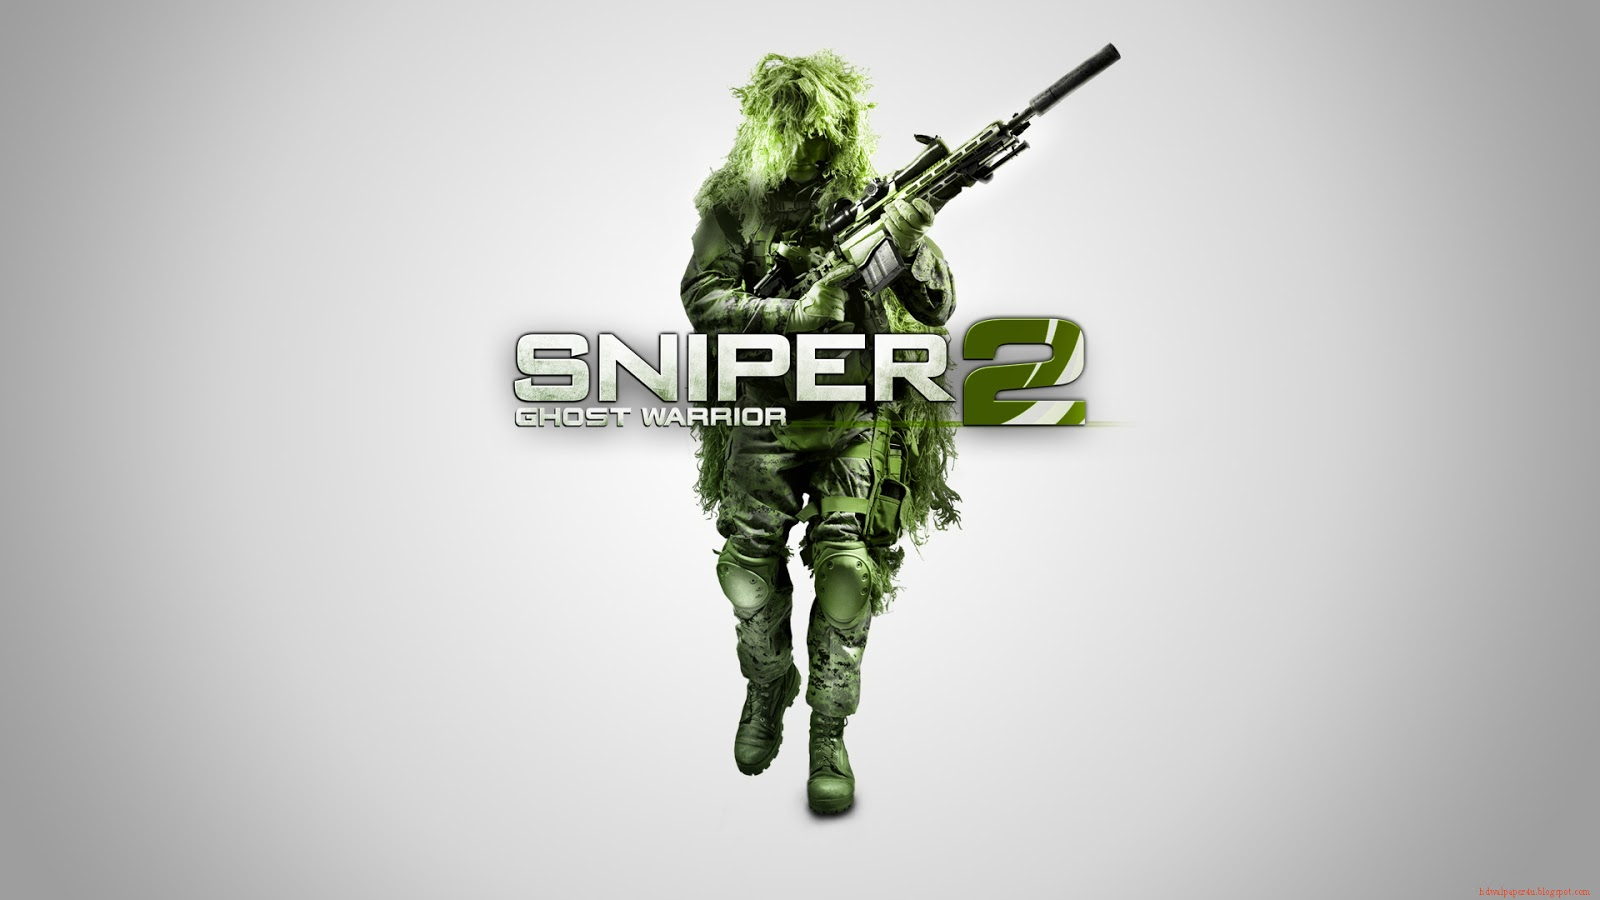 sniper ghost warrior 2 hd wallpapersniper 2 wallpaper sniper 2 hd 1600x900